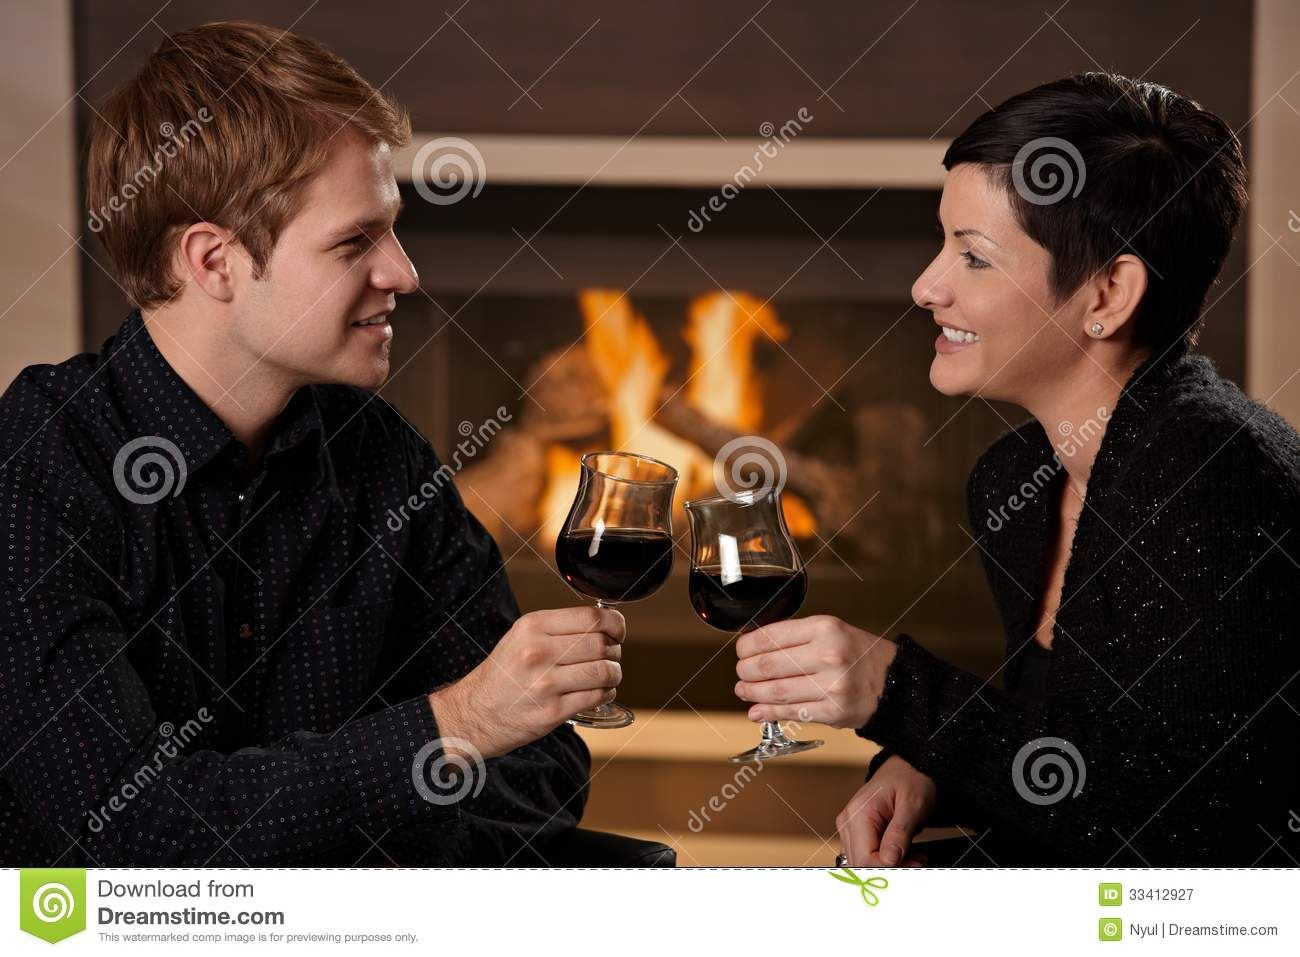 romantic free dating Love and romance in the world of massive multi online role playing games phillip torrone with all the joy that an mmorpg romance can bring there is also a.